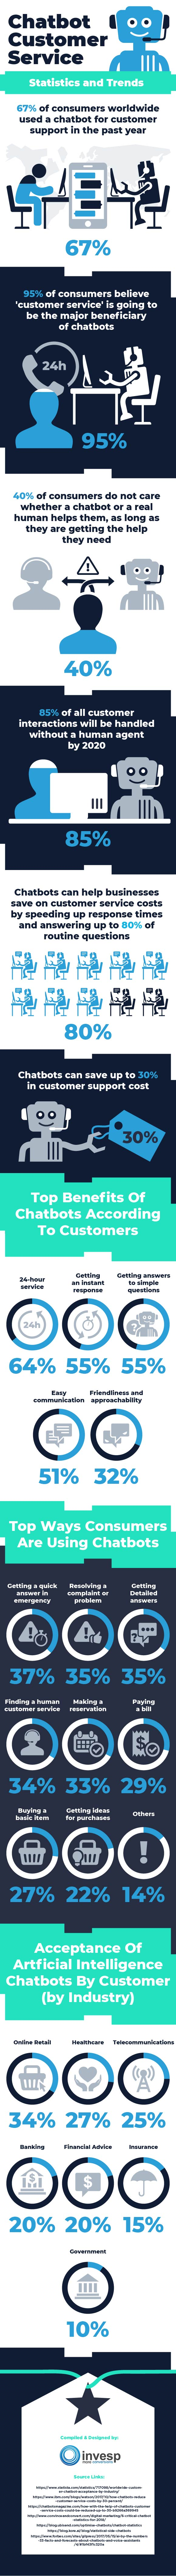 Chatbot Customer Service – Statistics and Trends